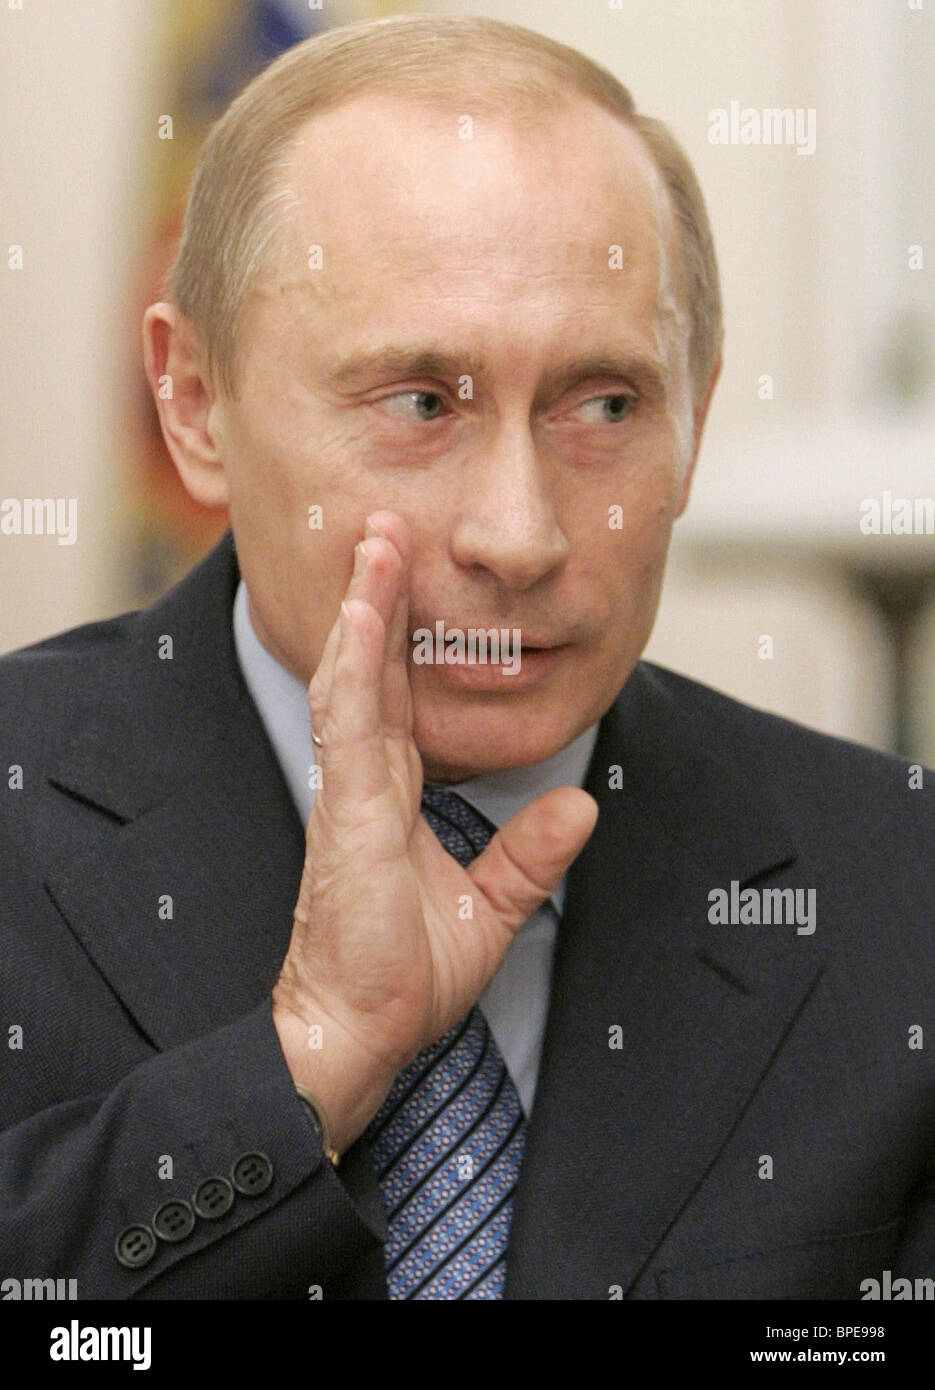 President Putin's interview with Time magazine - Stock Image